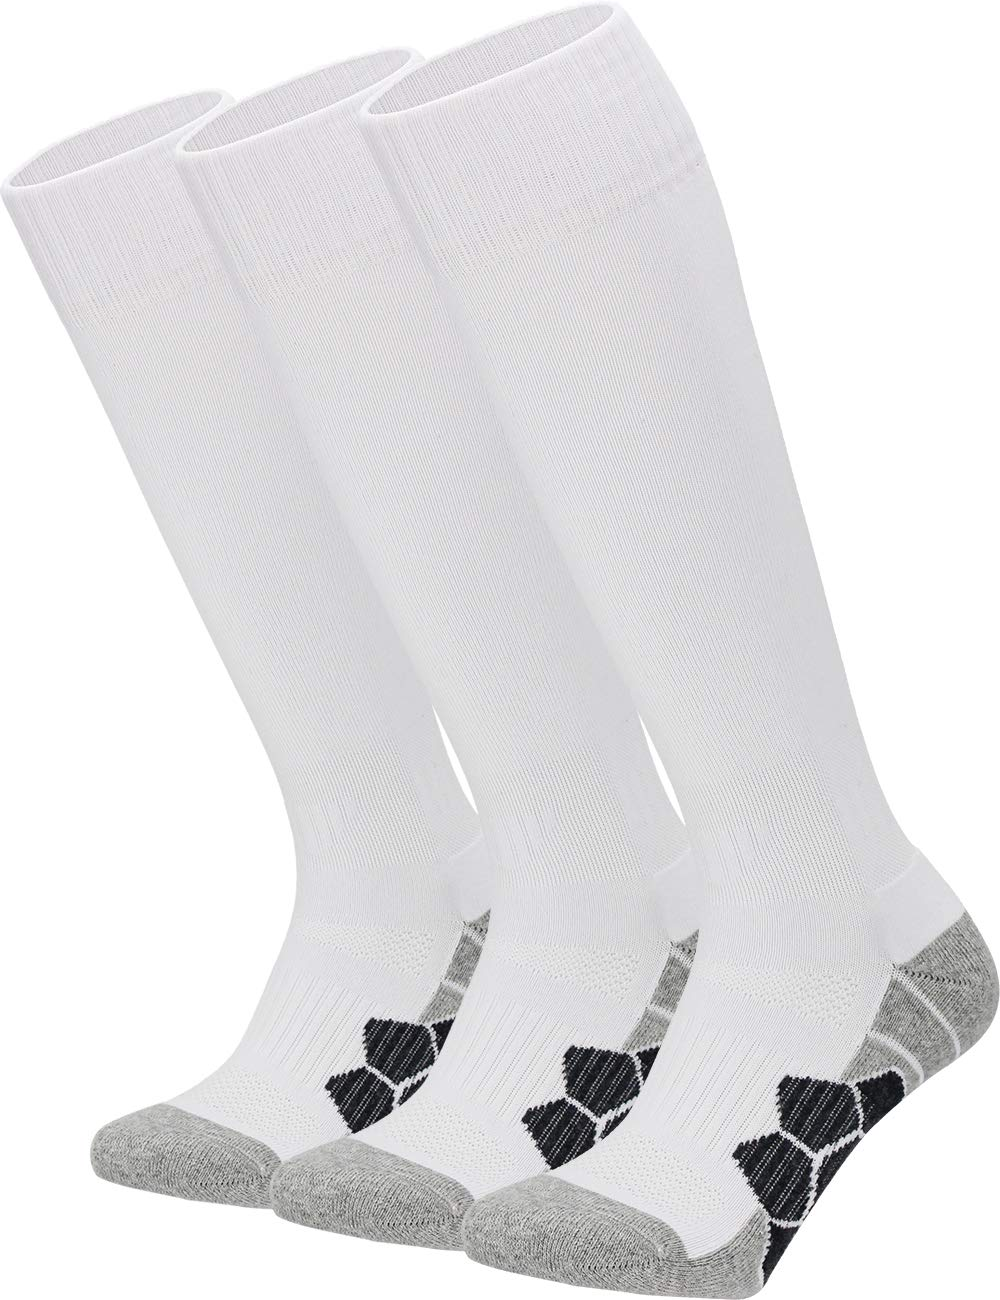 Youth Kids Adult Knee High Cotton Athletic Socks Boys Girls Parent-Child Outdoor Active Long Towel Bottom Socks, 3-Pair White, Size L (Kids 9C-13C / W 10-13 / M 8-12) by APTESOL